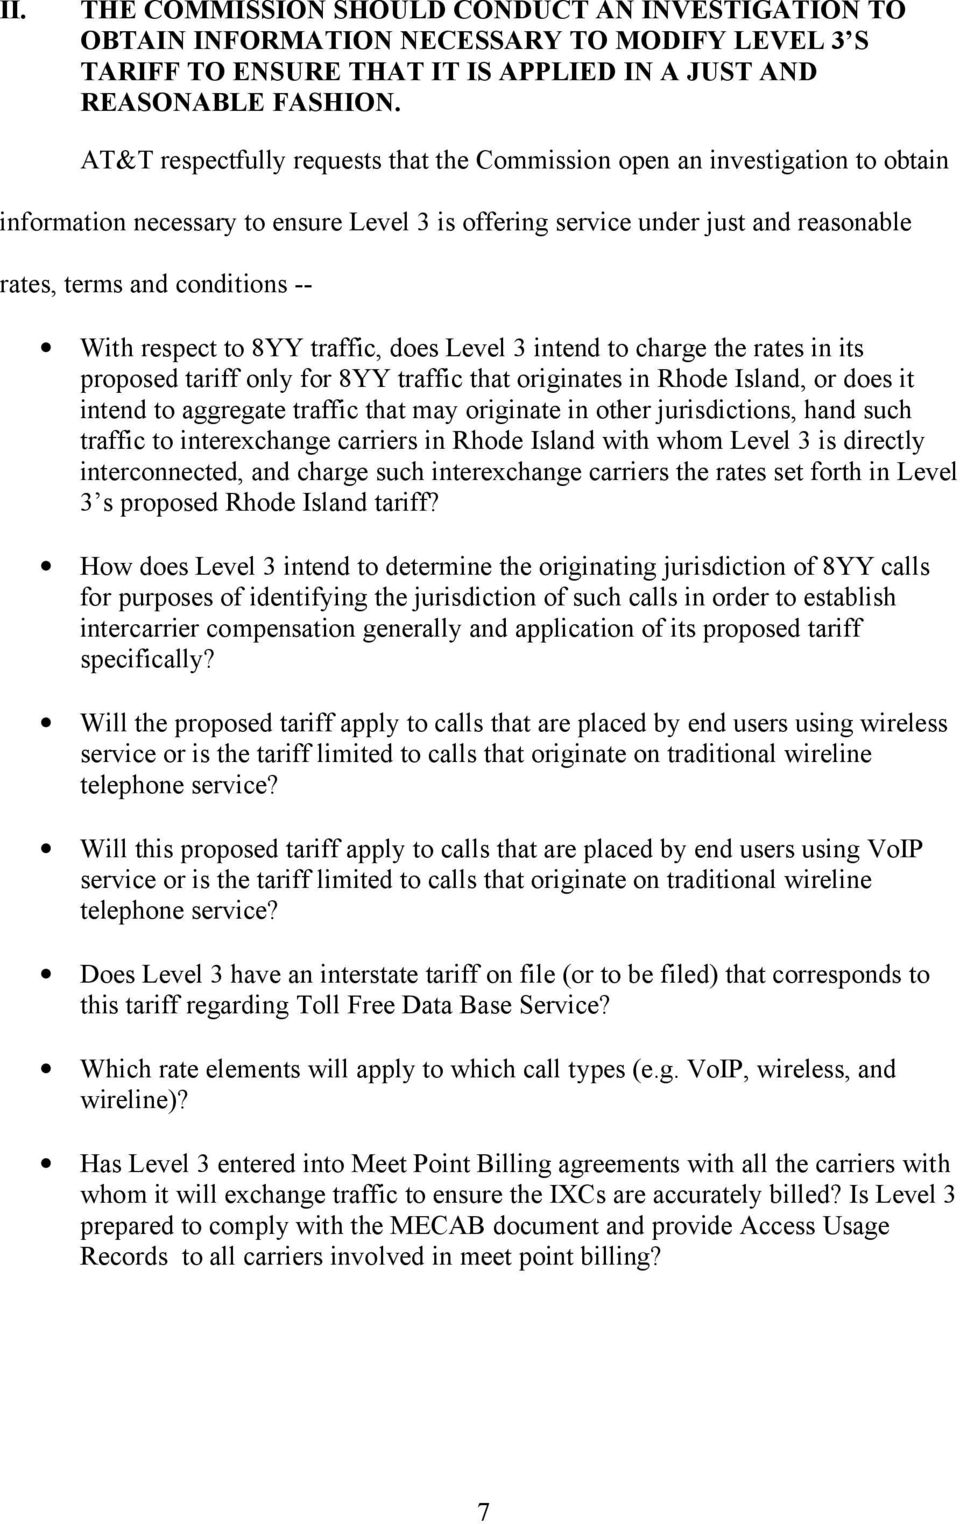 With respect to 8YY traffic, does Level 3 intend to charge the rates in its proposed tariff only for 8YY traffic that originates in Rhode Island, or does it intend to aggregate traffic that may